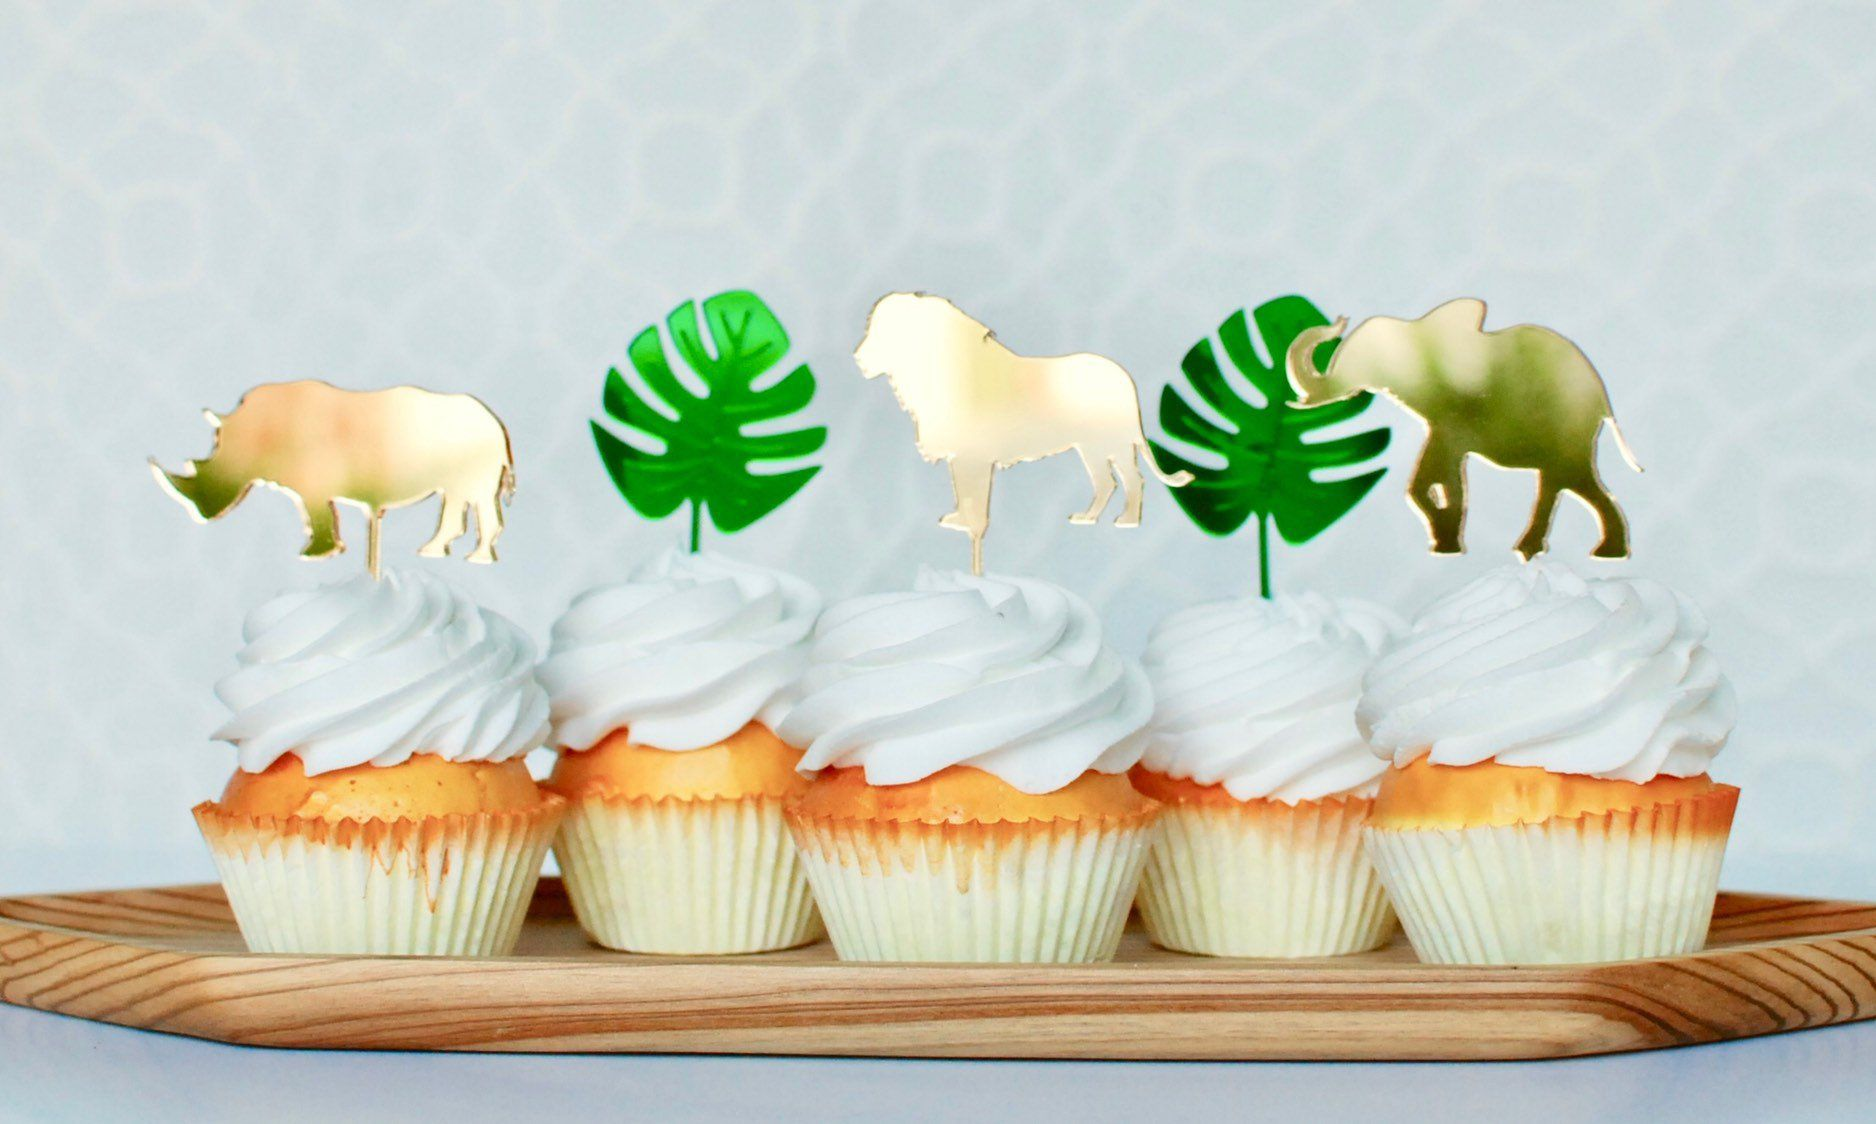 for Jungle Themed Birthday or Baby Shower set of 24 Giraffe Cupcake Toppers